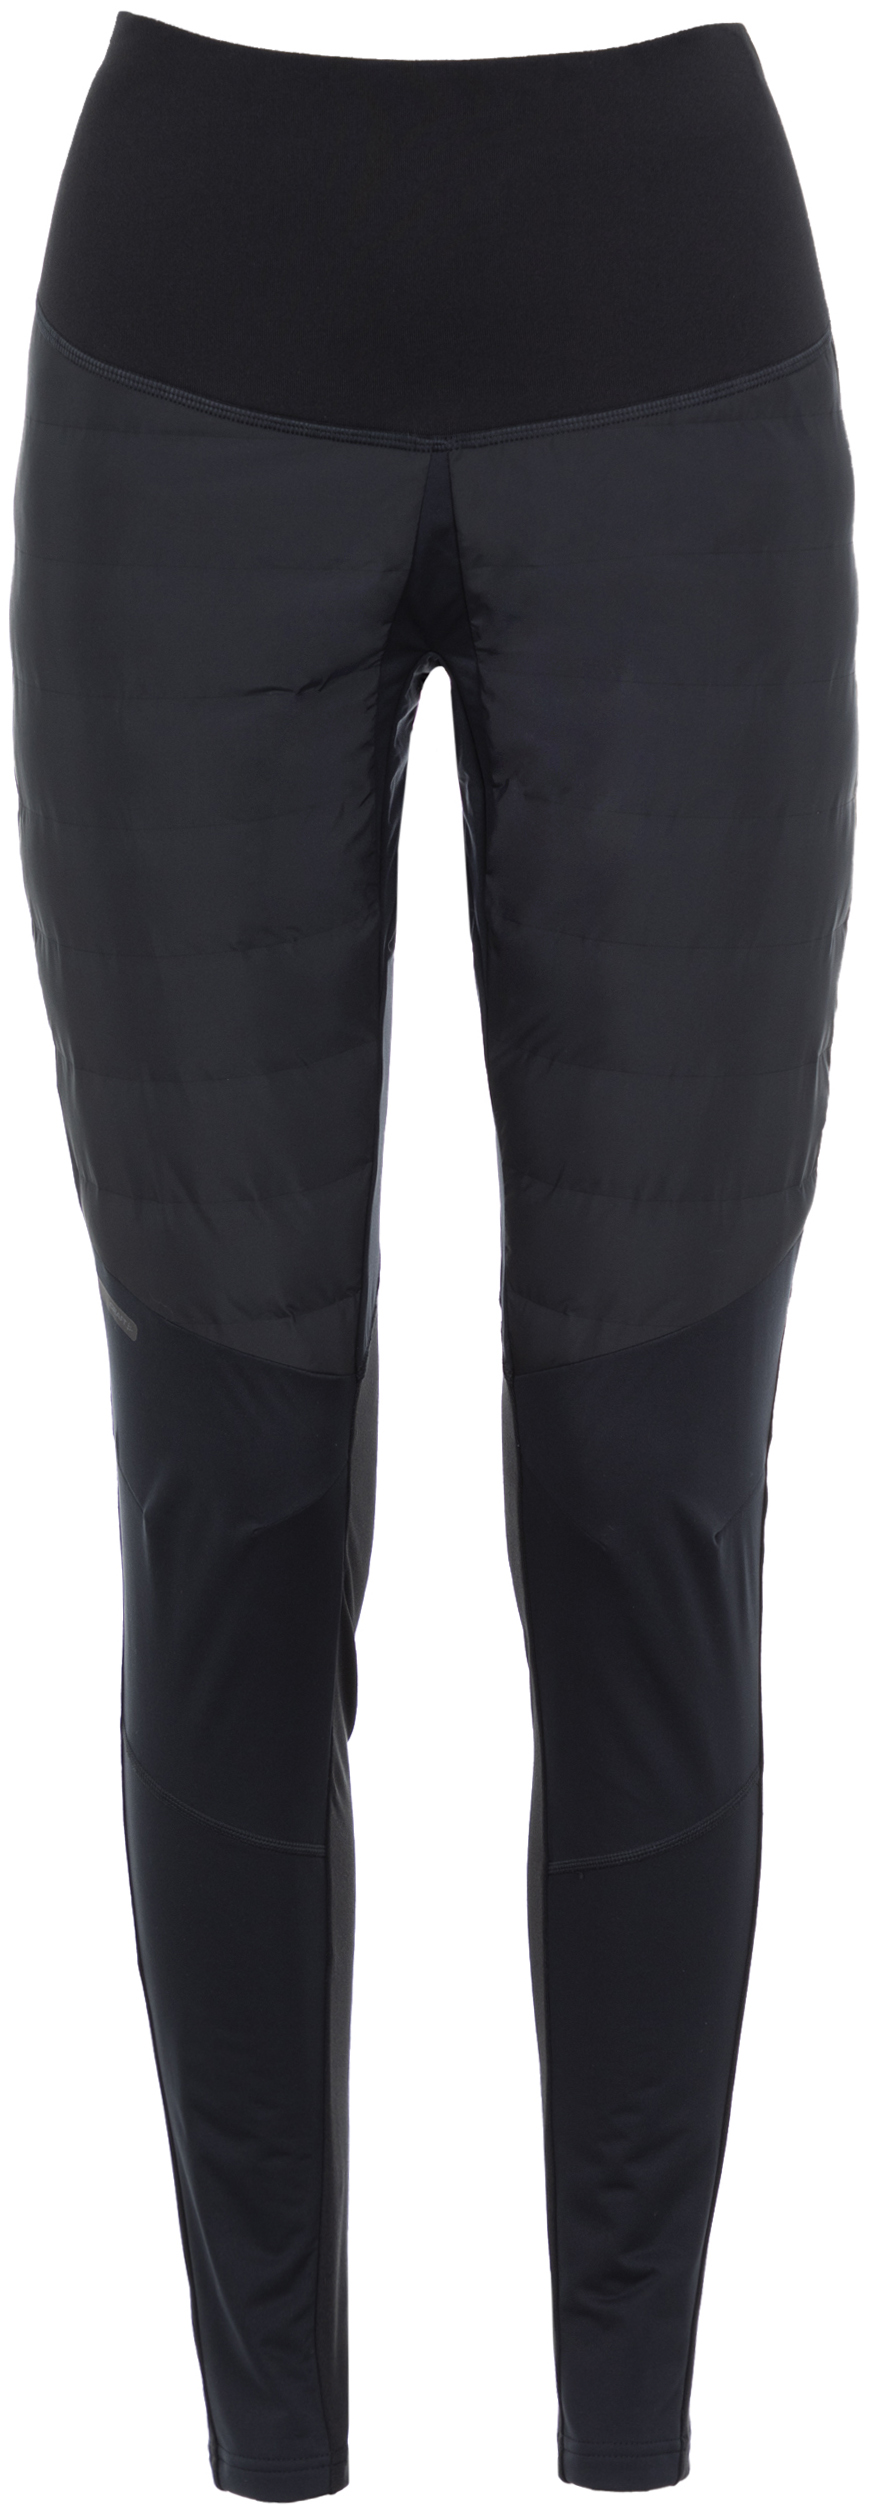 Craft Брюки женские Craft Pursuit Thermal Tights, размер 46-48 withering tights